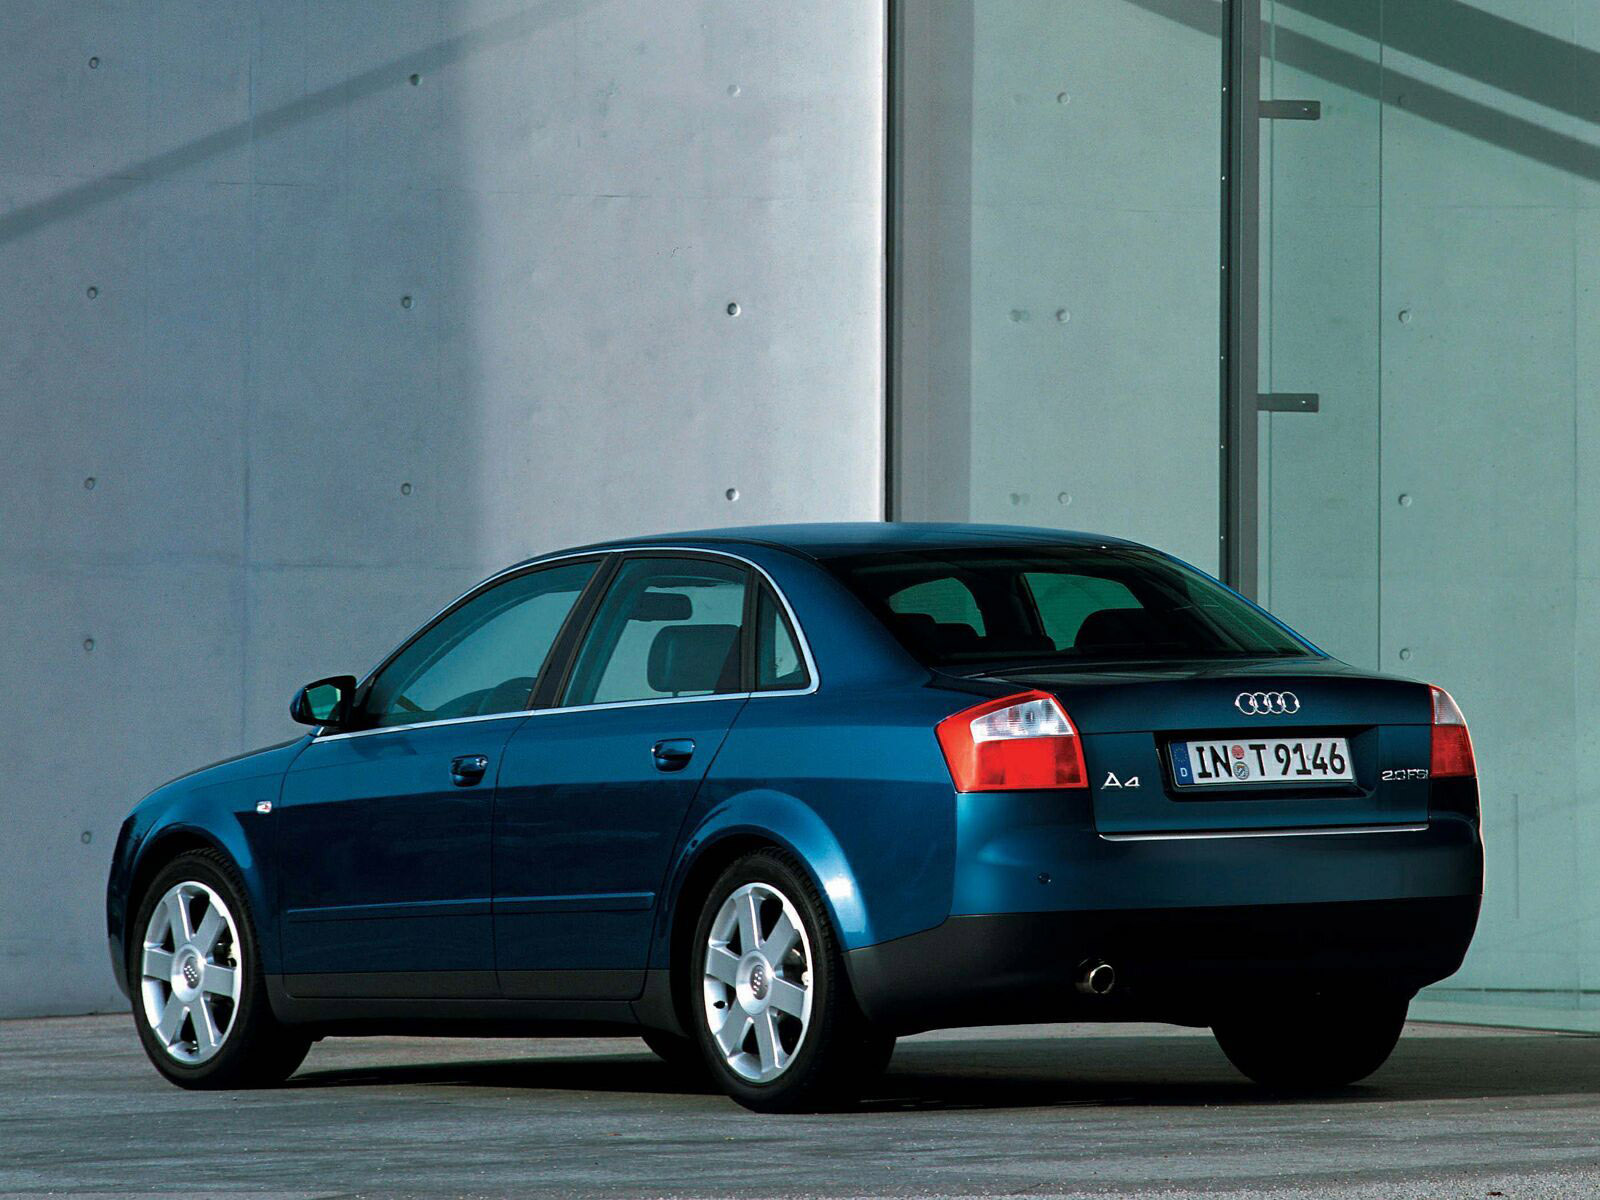 audi a4 sedan 2000 2004 audi a4 sedan 2000 2004 photo 07 car in pictures car photo gallery. Black Bedroom Furniture Sets. Home Design Ideas